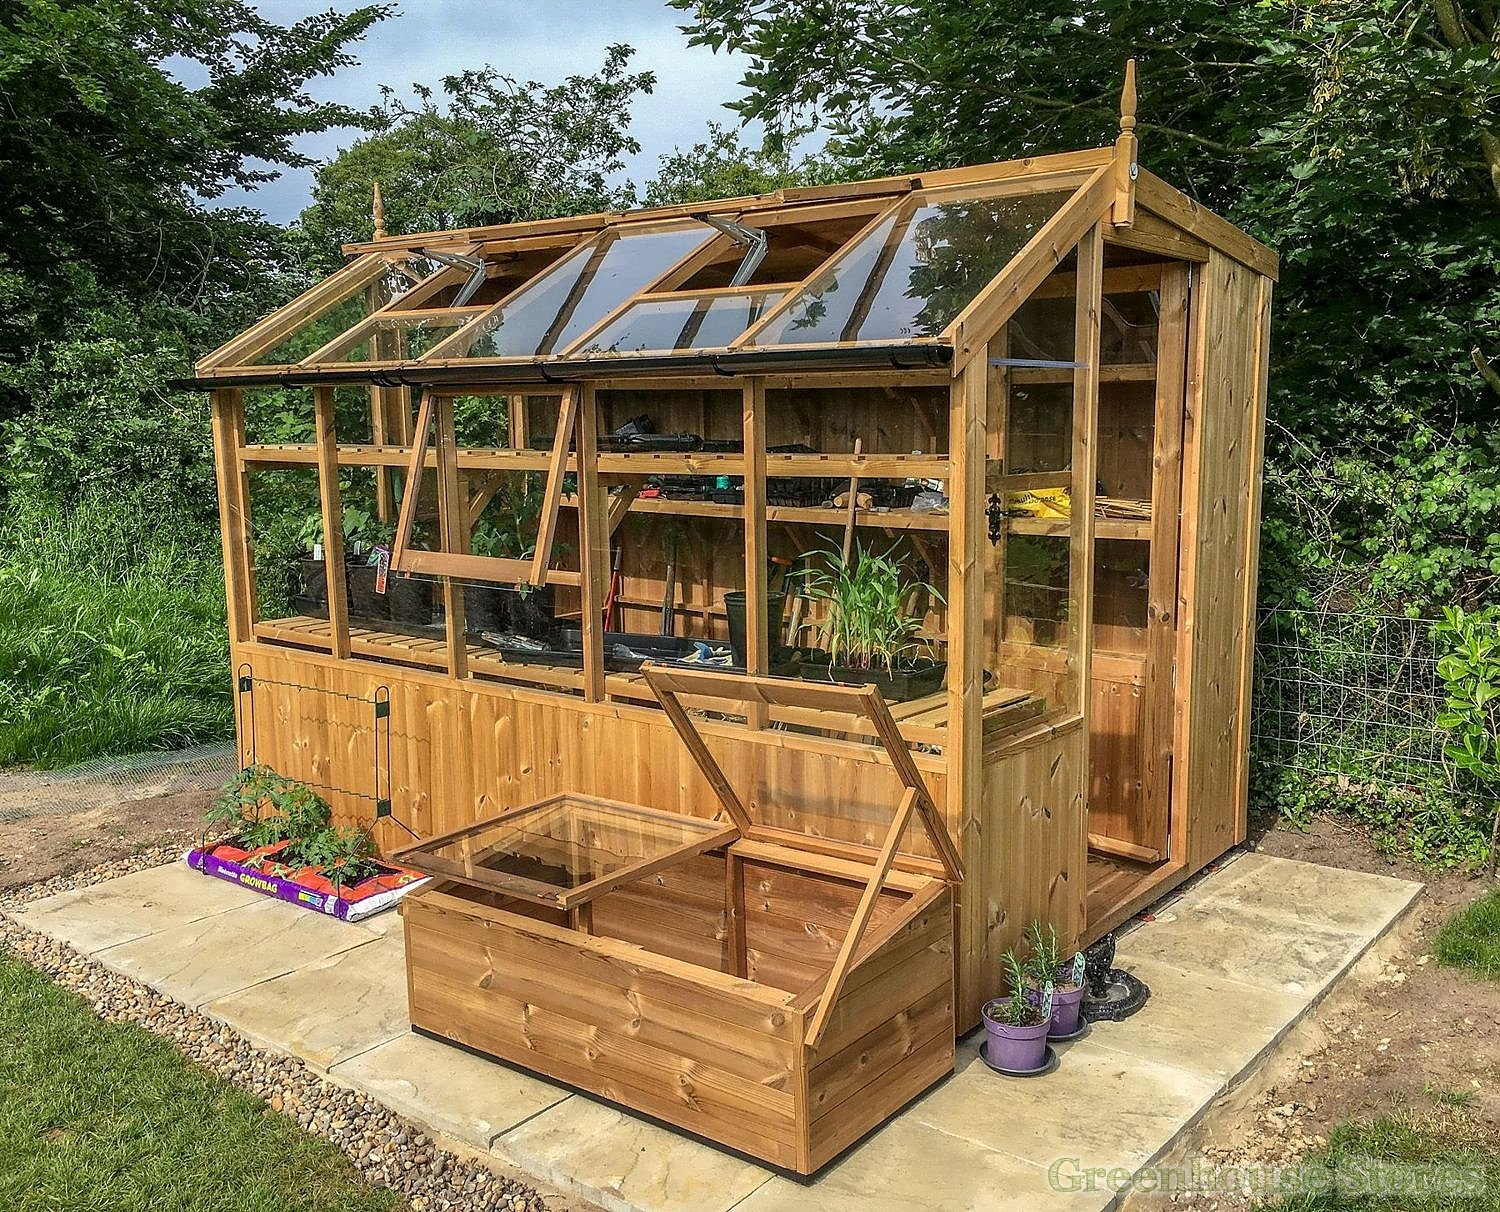 Swallow Jay 6x8 Wooden Potting Shed